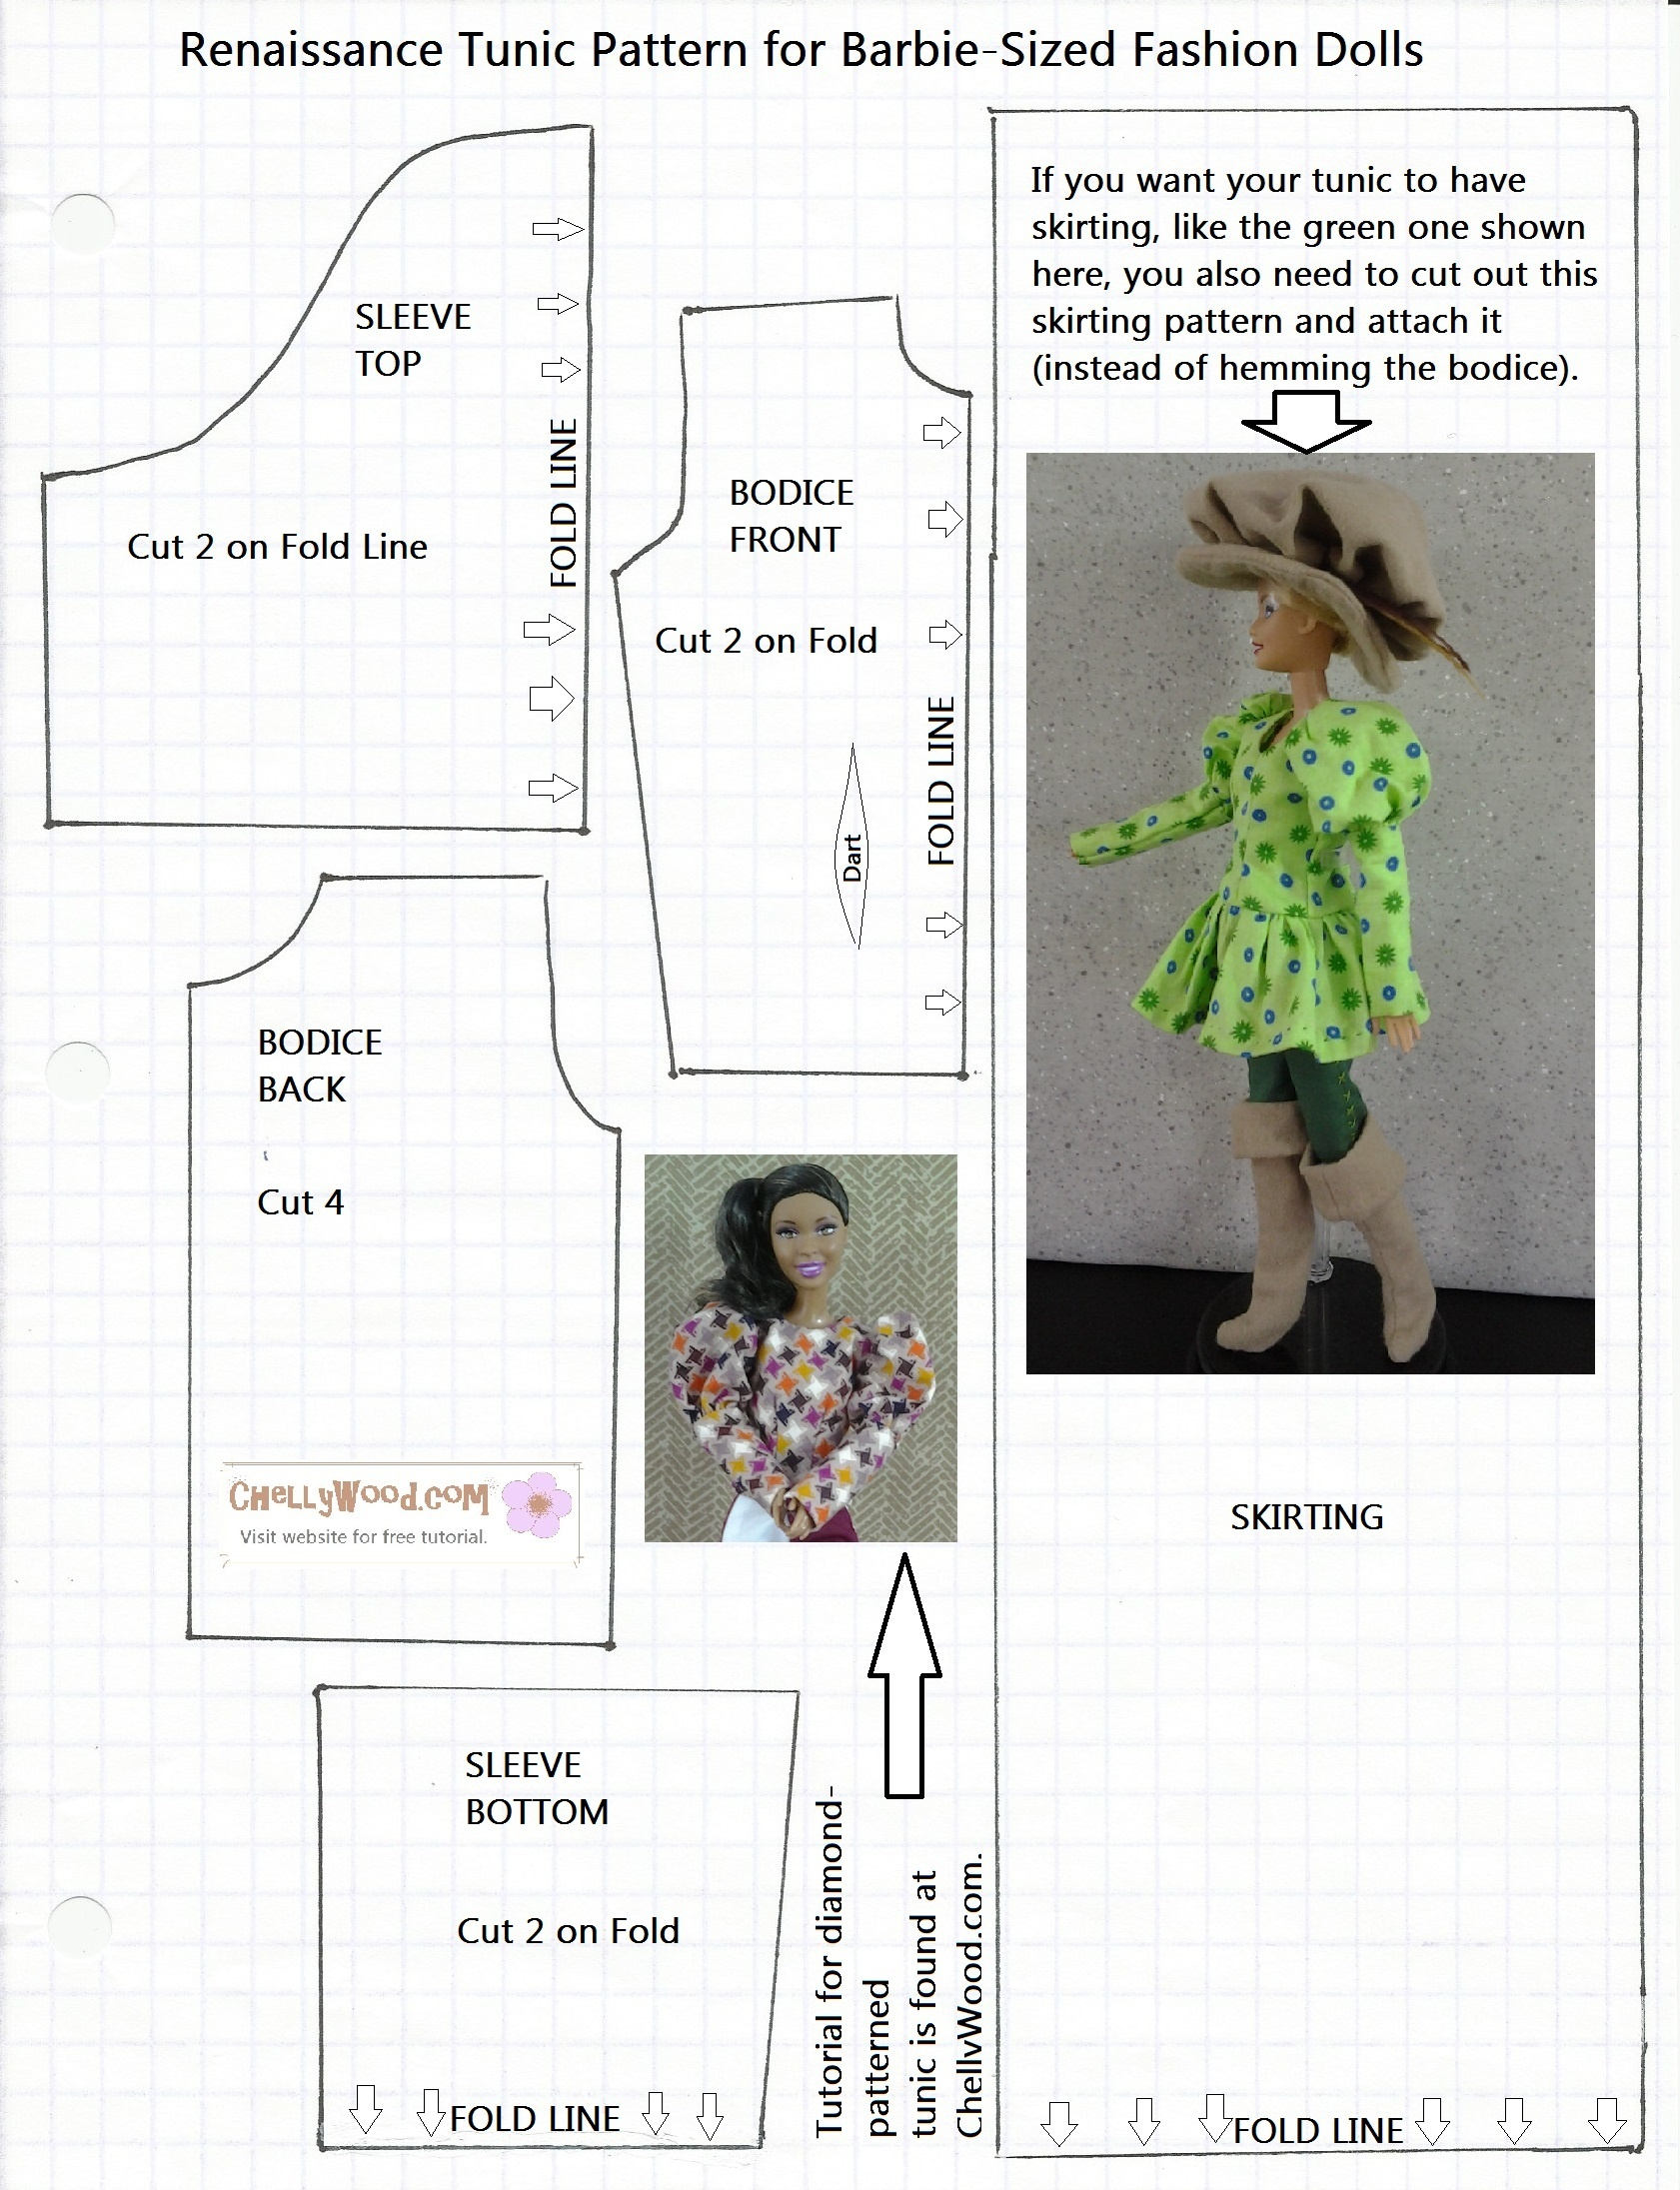 Free Printable Barbie Doll Clothes Patterns – Free, Printable Doll - Free Printable Barbie Doll Sewing Patterns Template